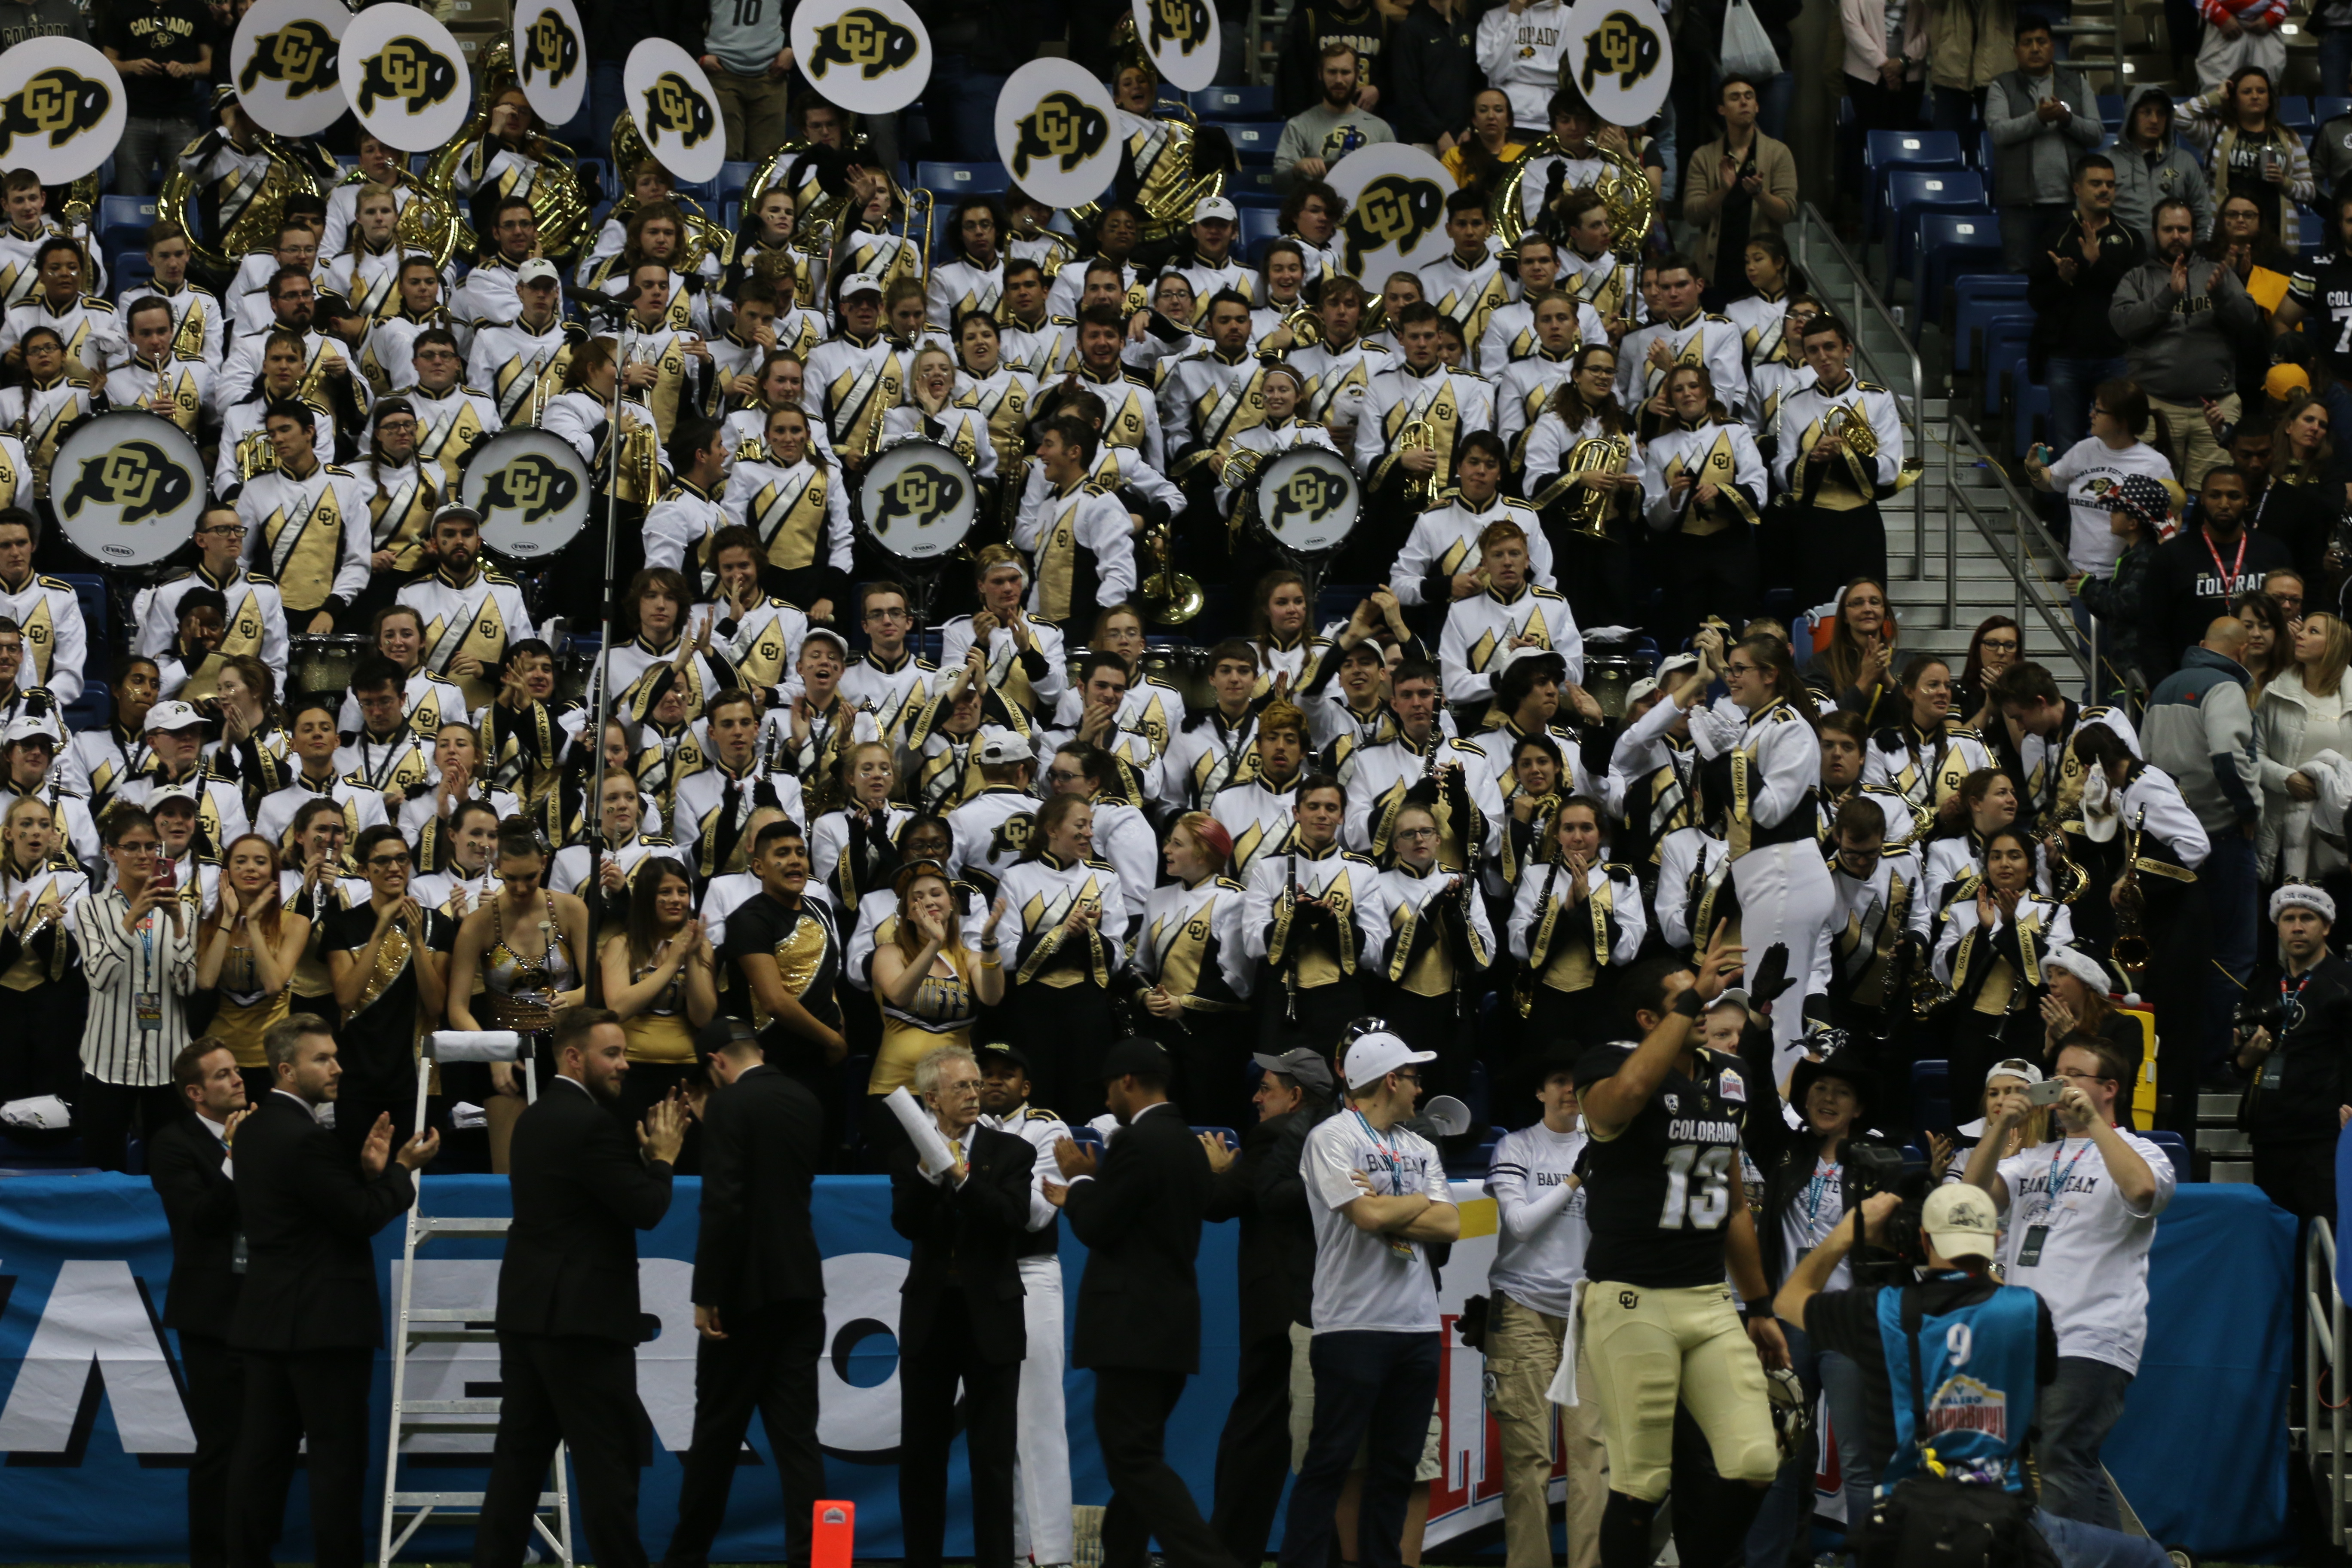 Buffs unable to slow Cowboys, fall in Alamo Bowl 38-8